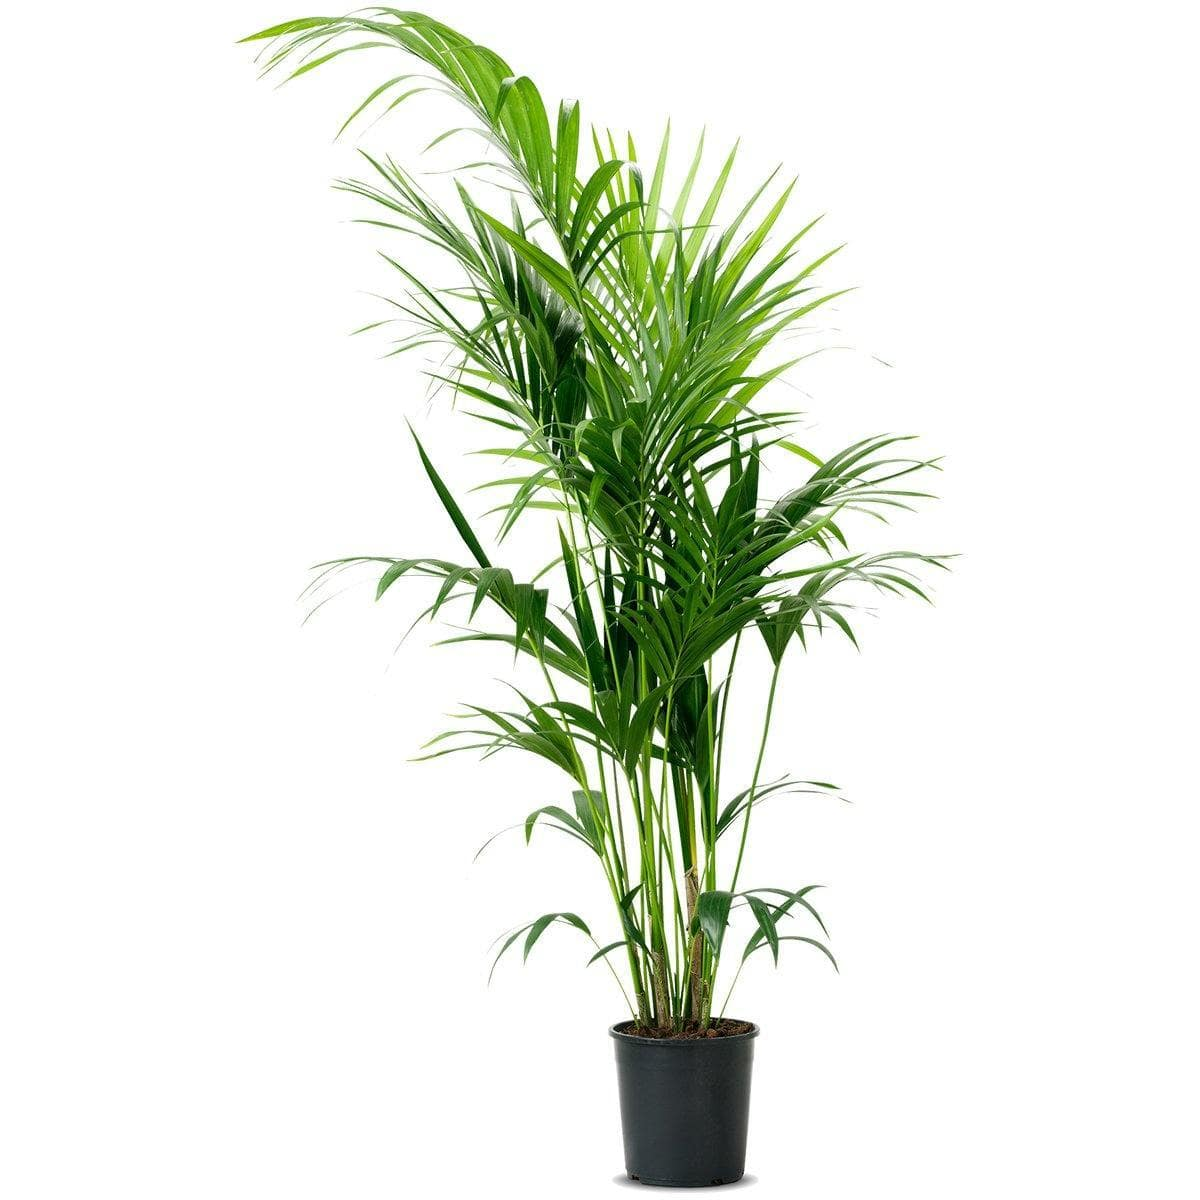 Areca Palm - Jagtap Nursery's Garden Center